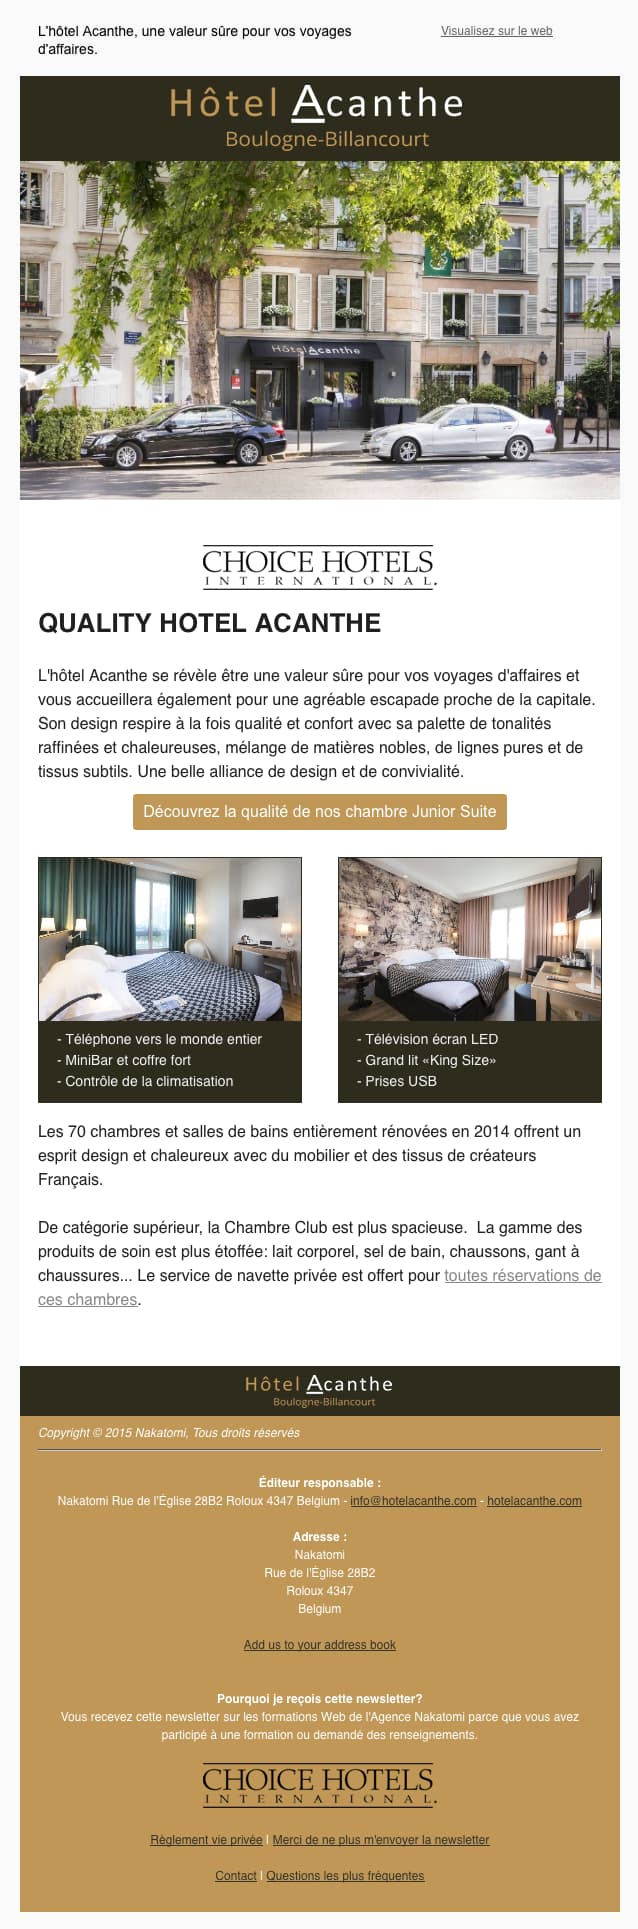 Image of Hotel Ancanthe newsletter